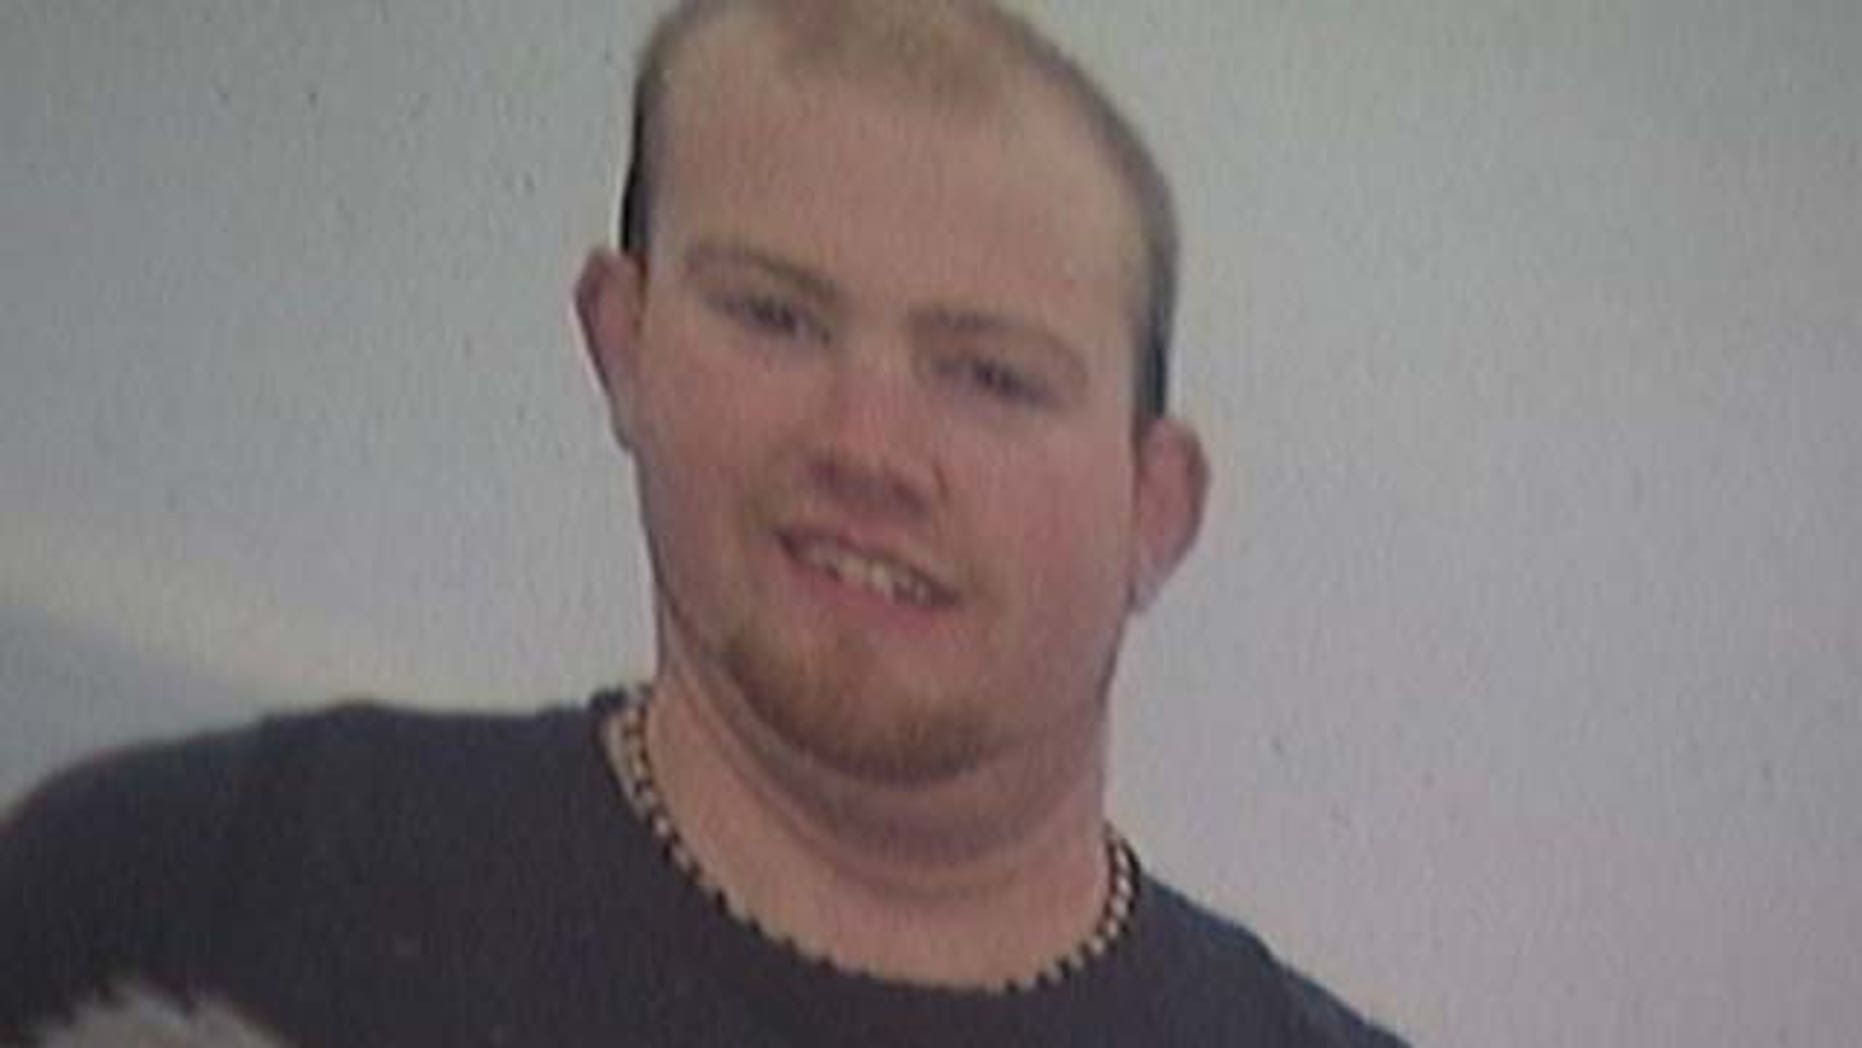 Image of  23-year old Nicholas Smith who was killed by a drunk driver two years ago in New Hampshire.